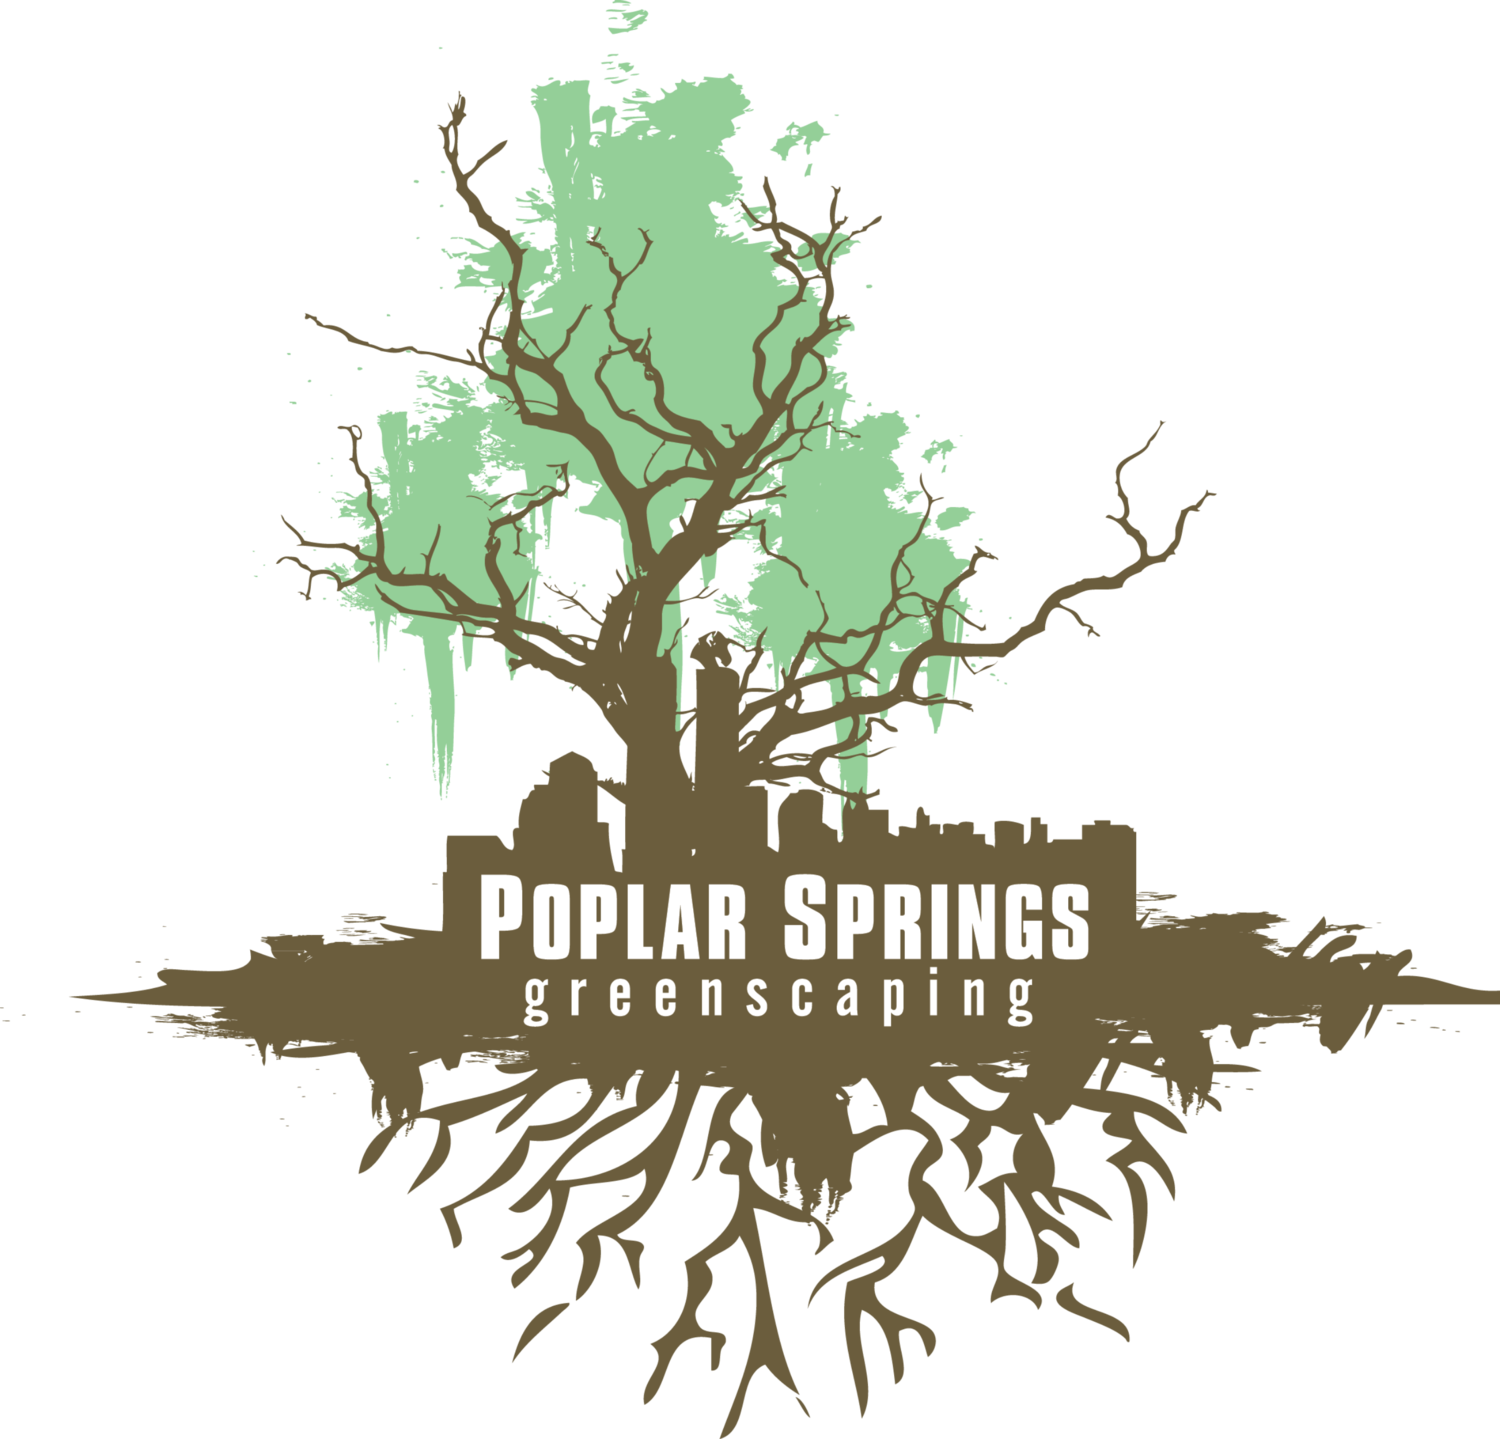 Poplar Springs Greenscaping